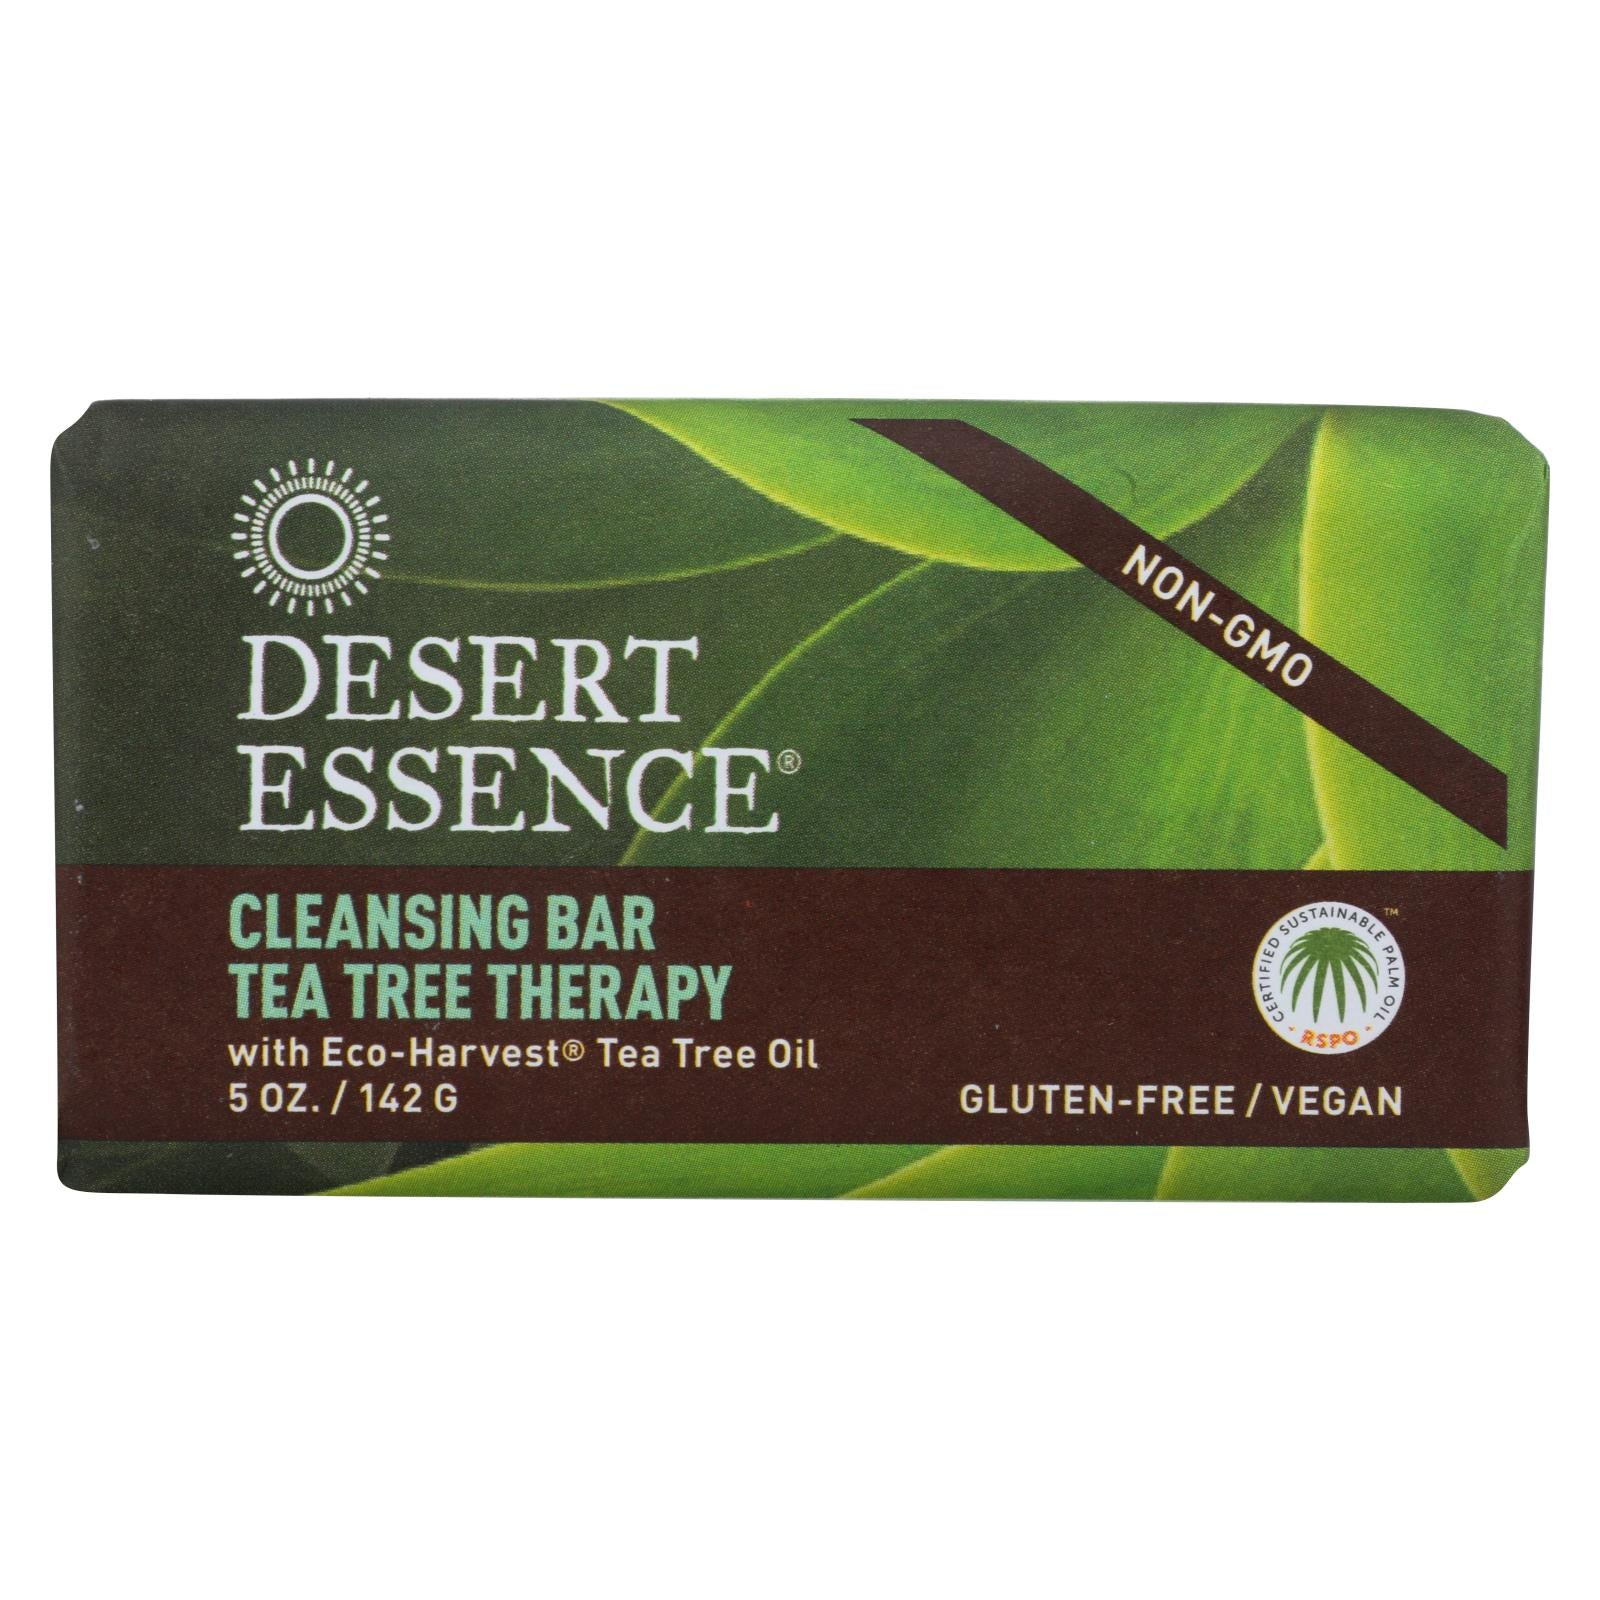 Buy Desert Essence Bar Soap - Tea Tree Therapy - 5 oz - Bar Soap from Veroeco.com